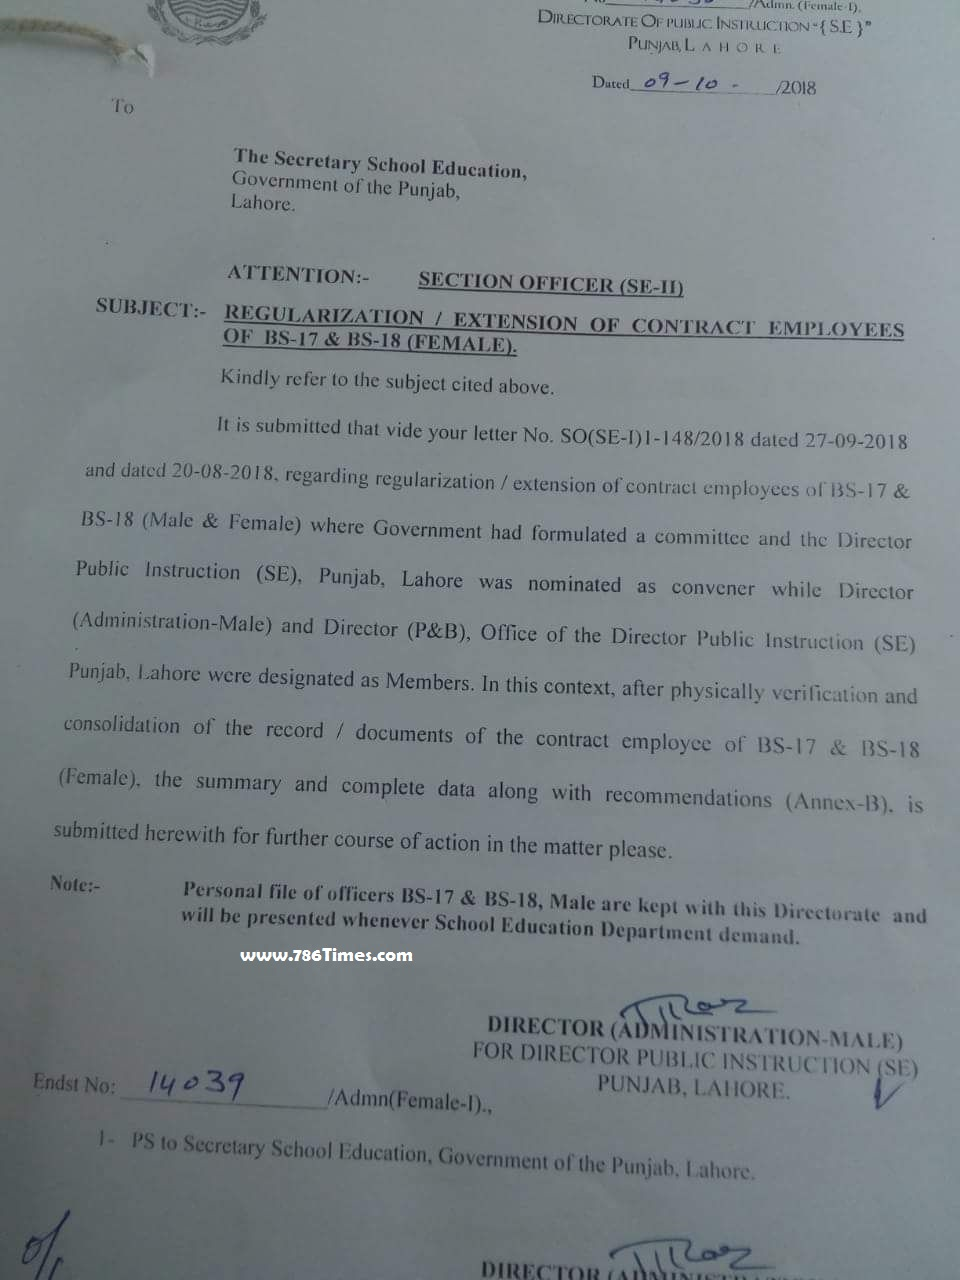 REGULARIZATION EXTENSION OF CONTRACT EMPLOYEES BPS-17 & BPS-18 ( FEMALES )